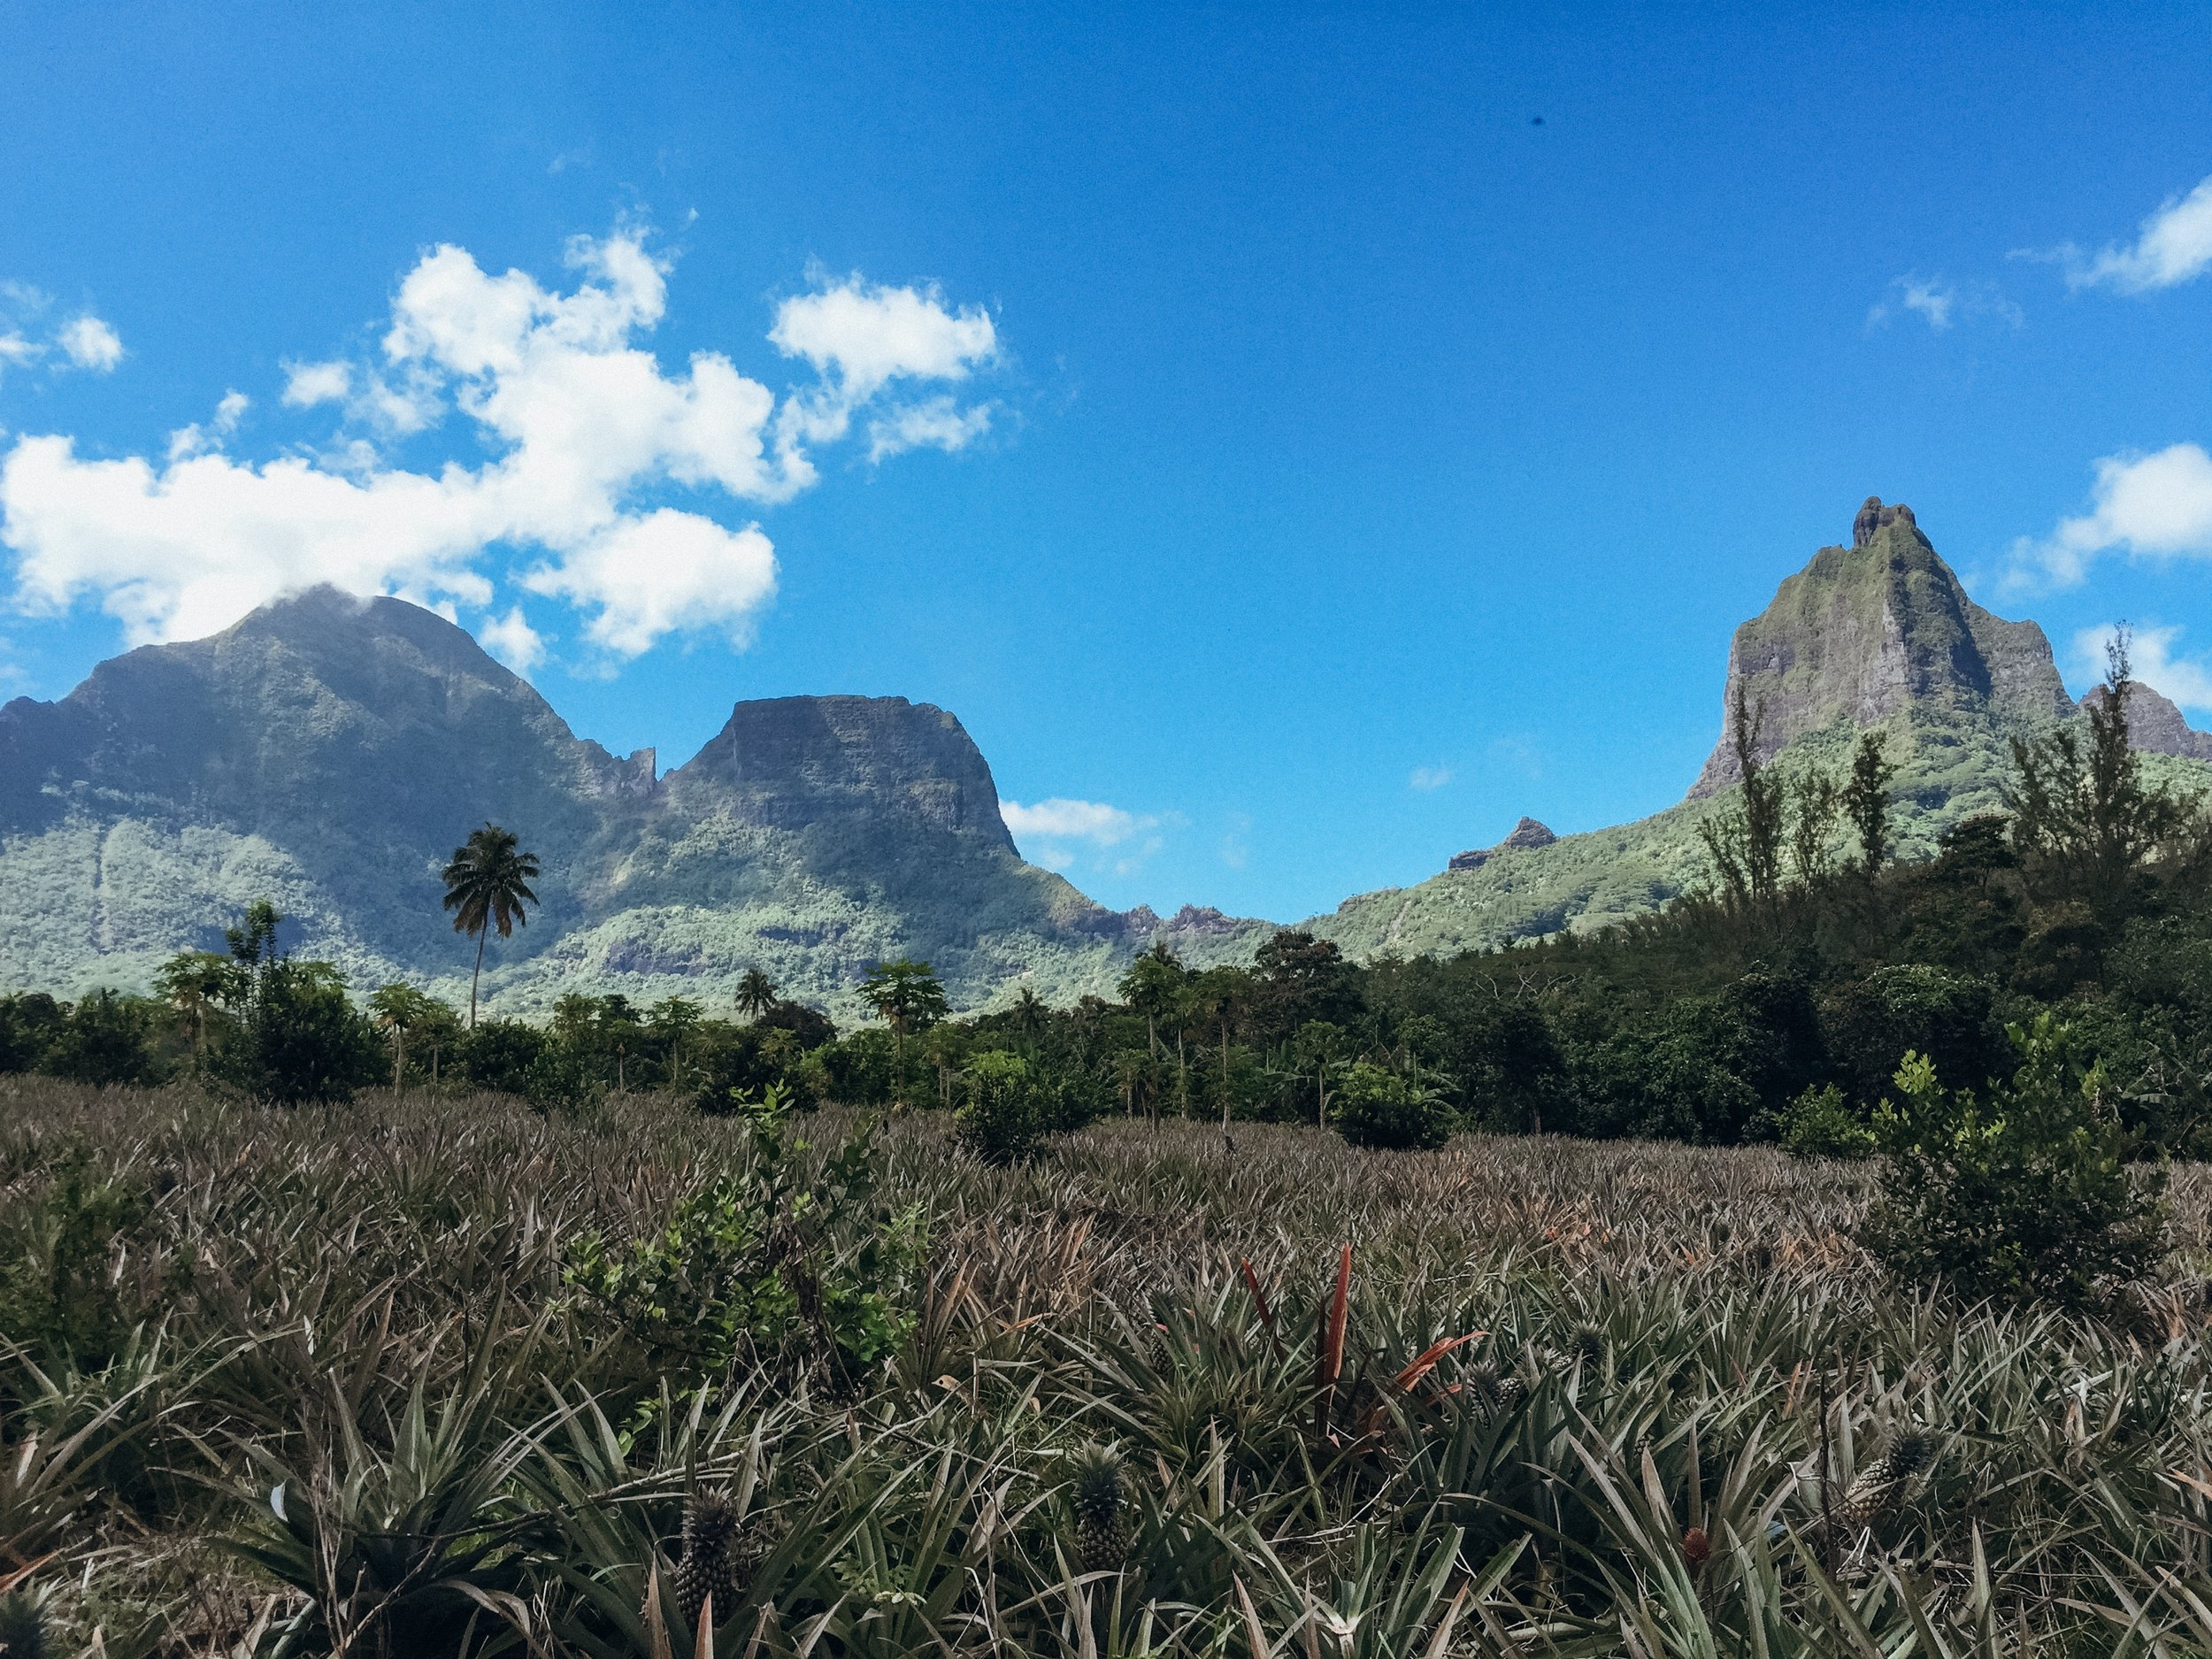 Fields of pineapple surrounded by the mountains of mo'orea.